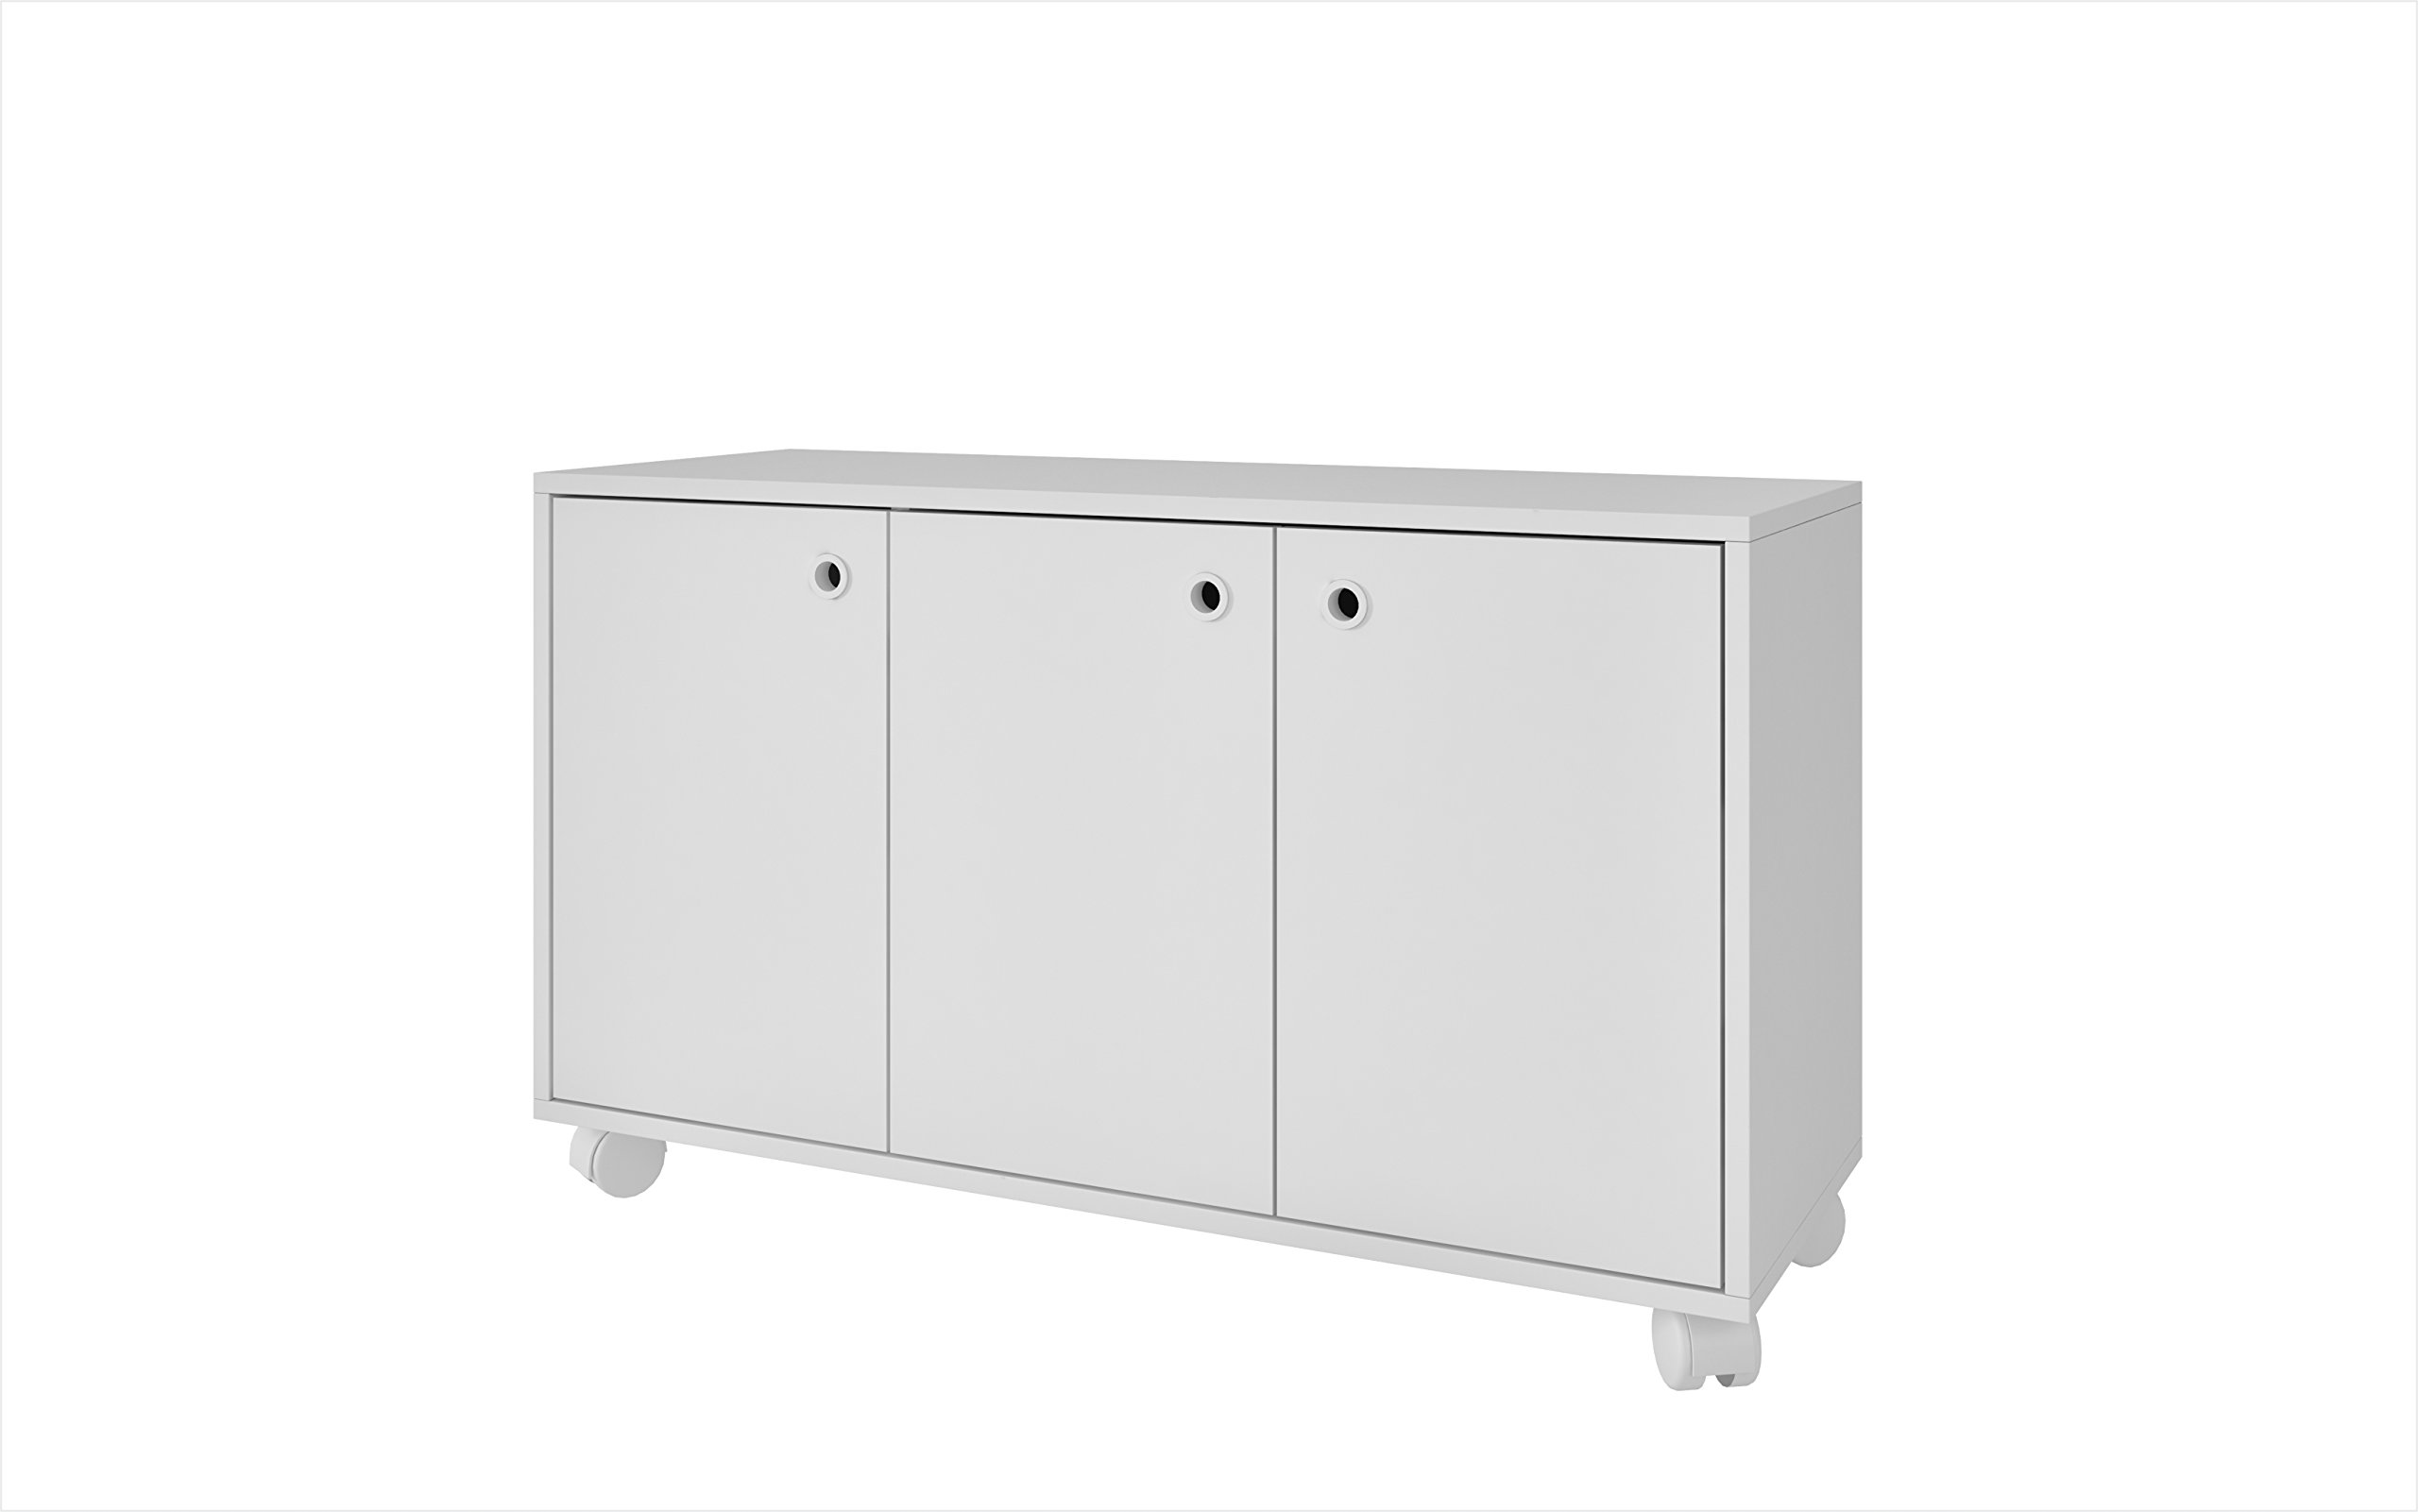 Manhattan Comfort Dali Cabinet Collection 3 Shelf Modern Storage Cabinet with 3 Doors and 4 Caster Wheels, 35.4'' L x 13'' D x 21'' H, White